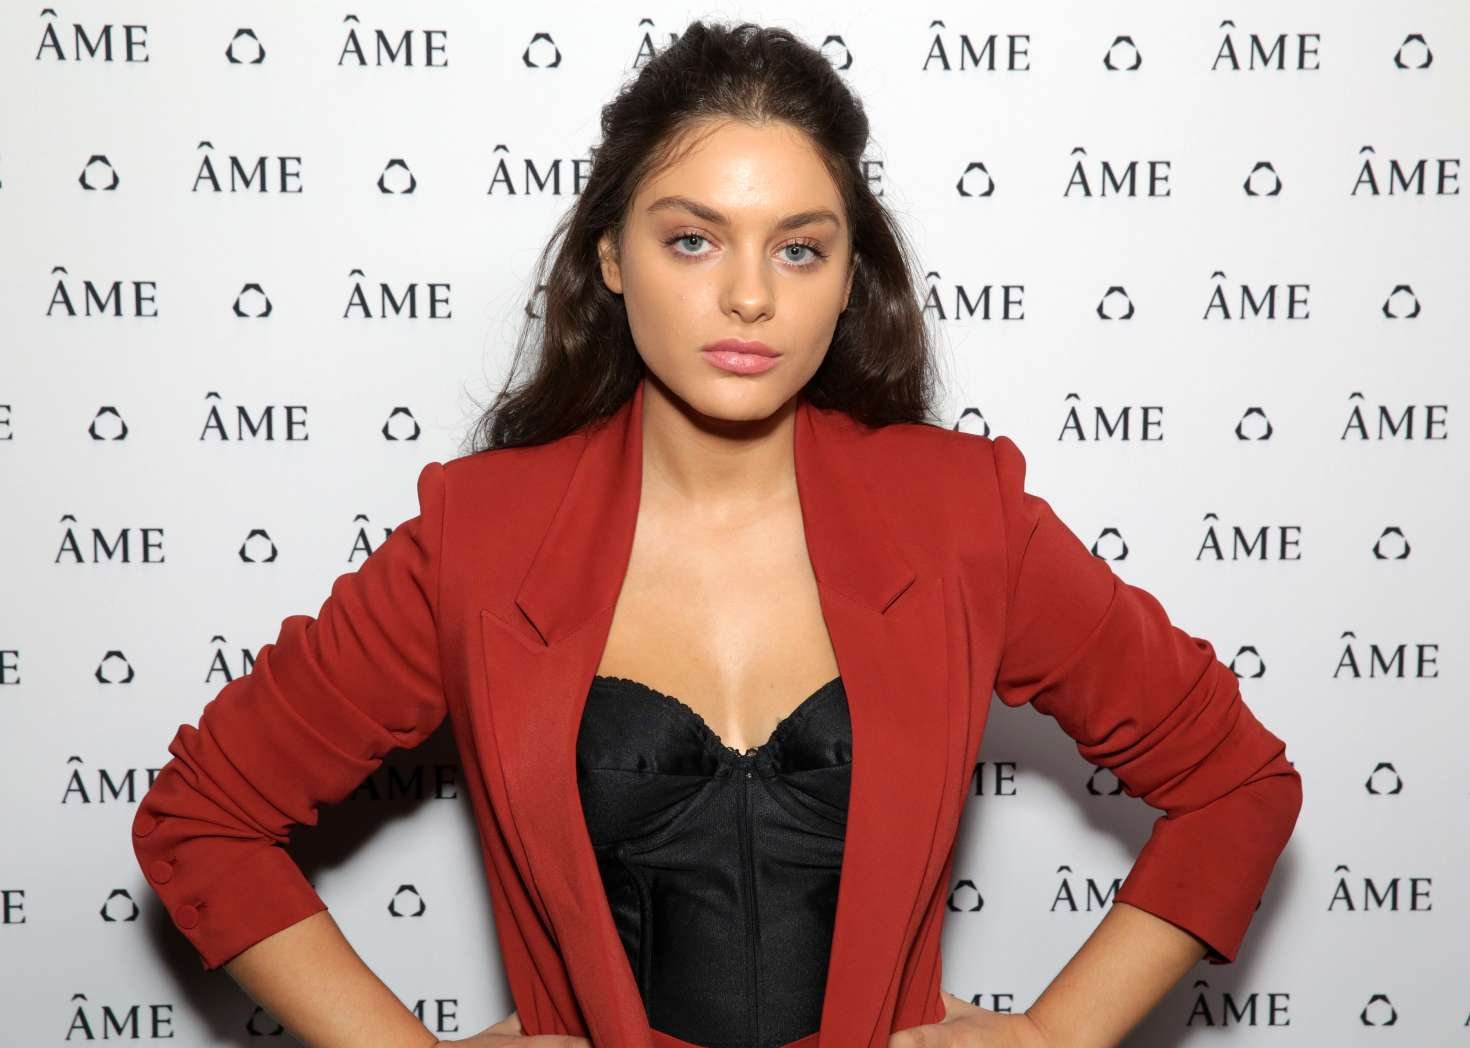 Odeya Rush – Ame Jewelry Launch Event in Los Angeles